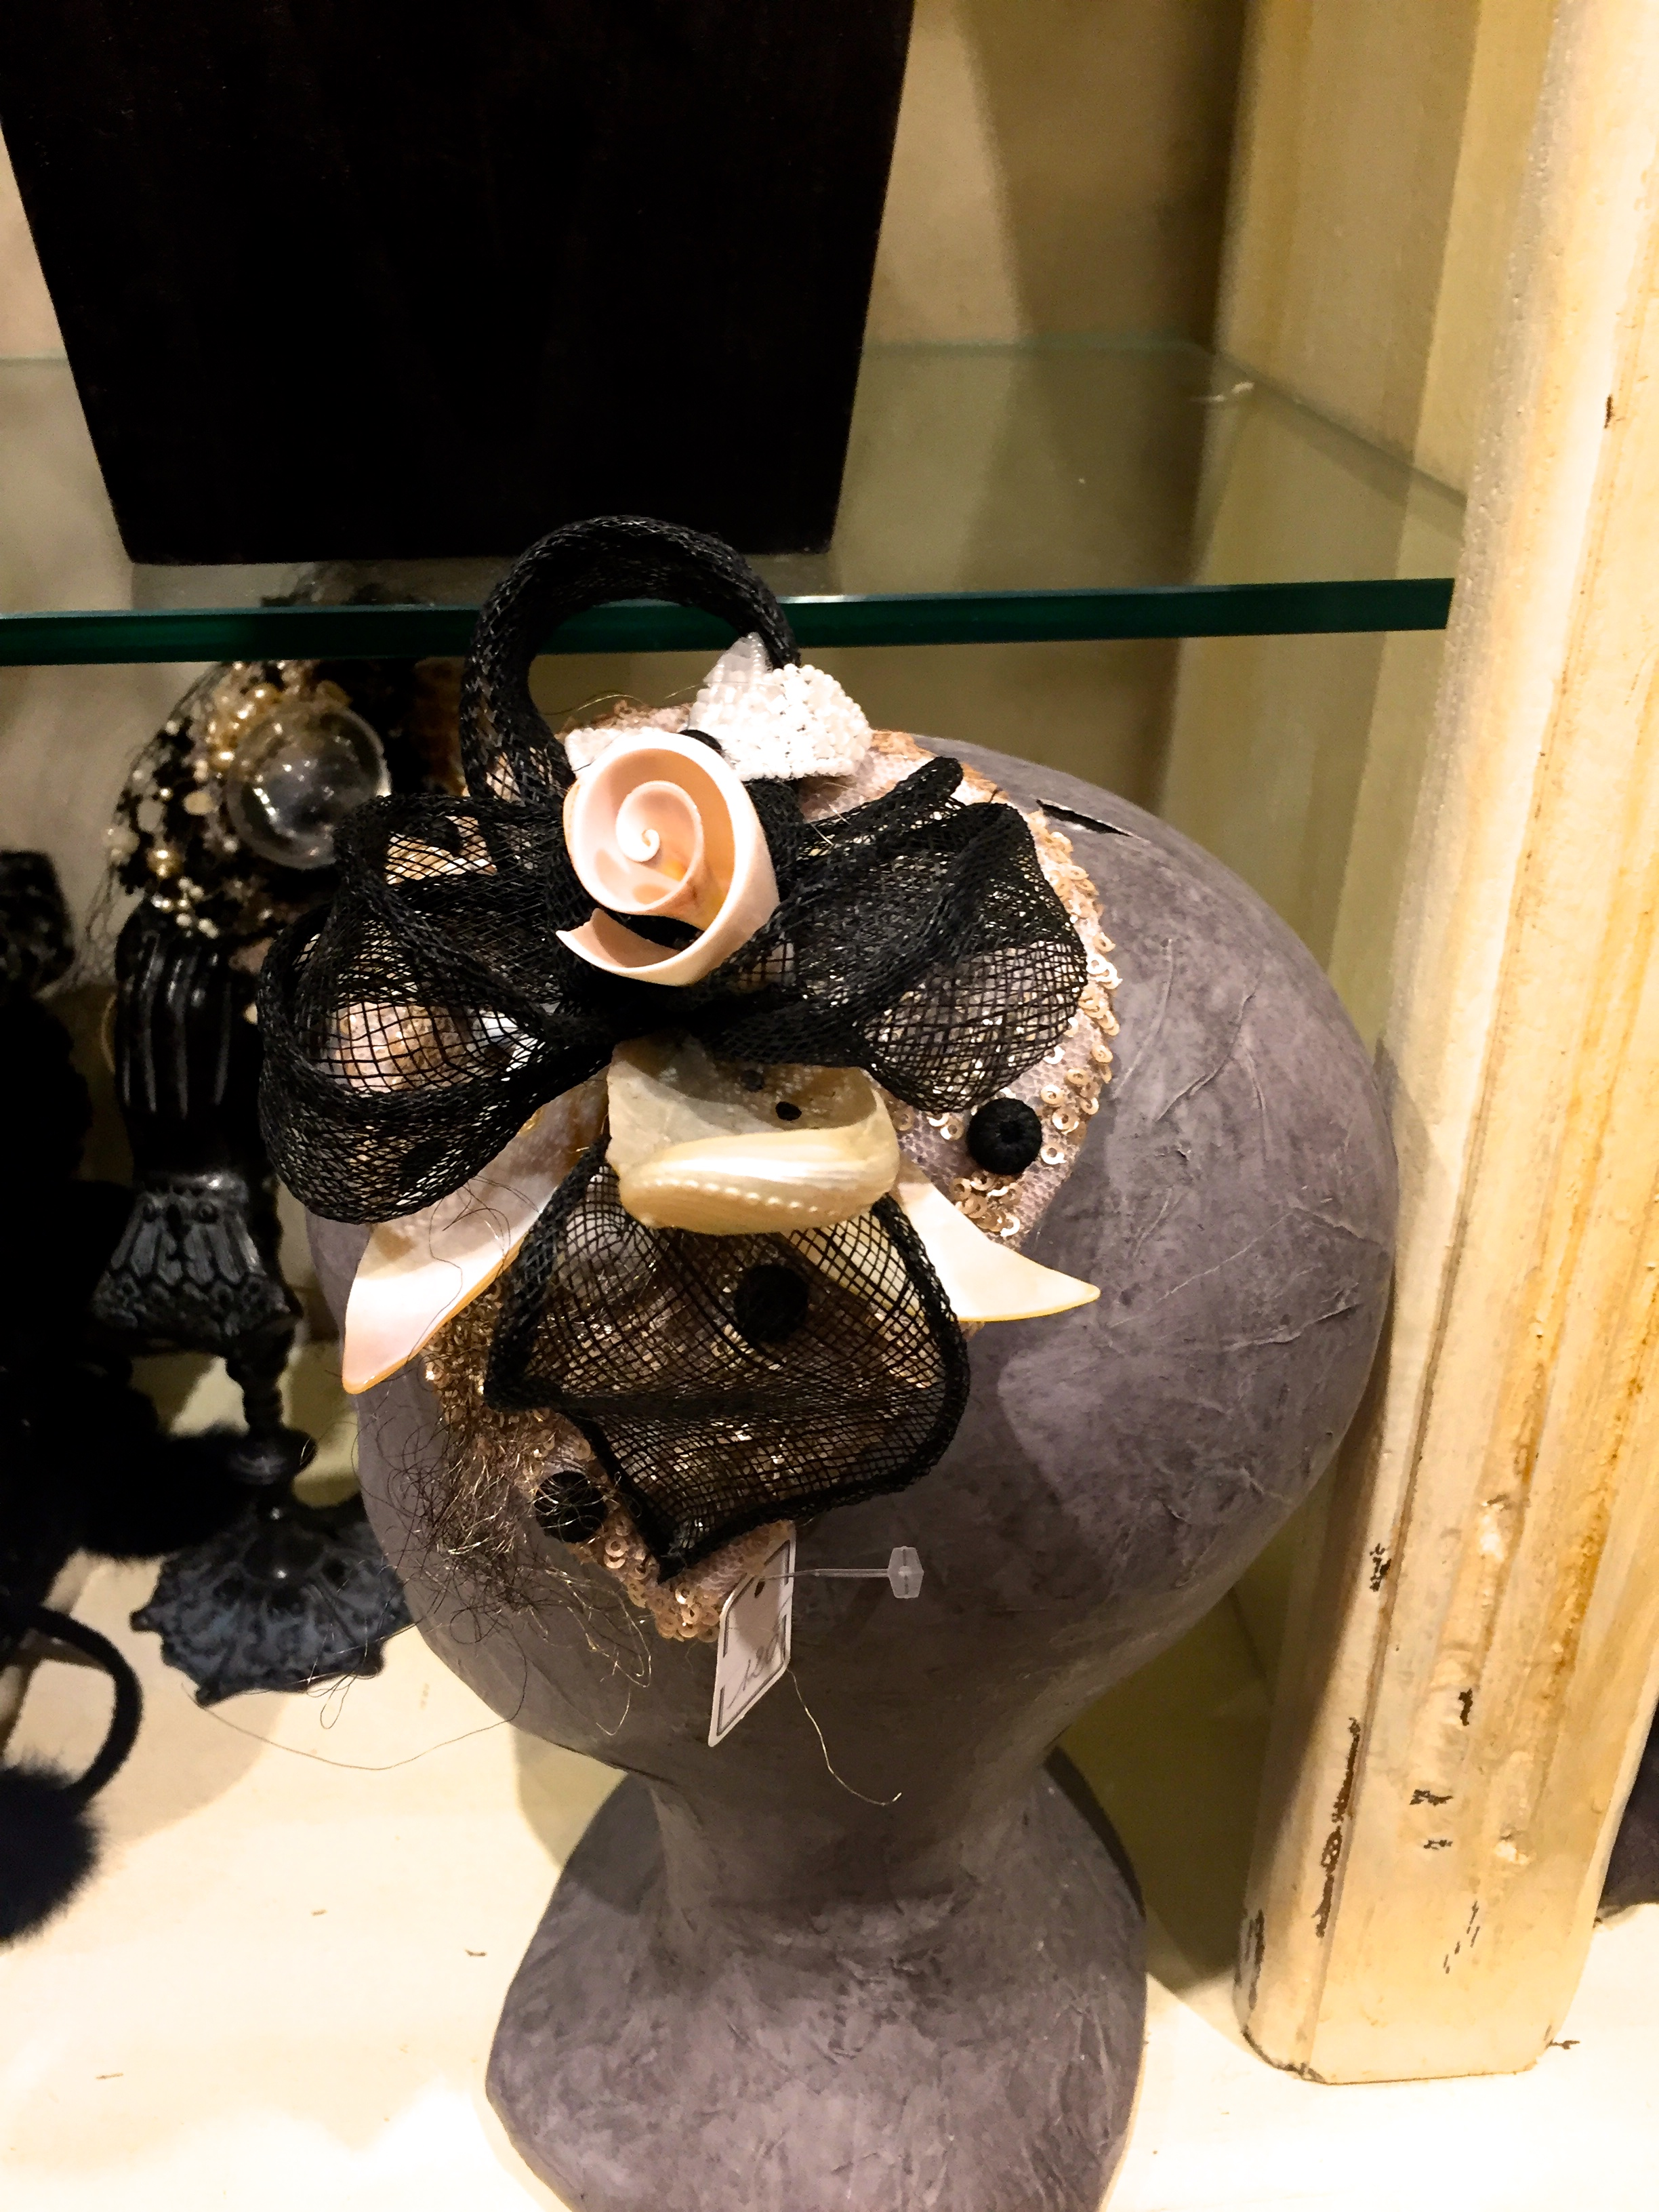 Chapeaux from Atelier de creations Petit Beguin